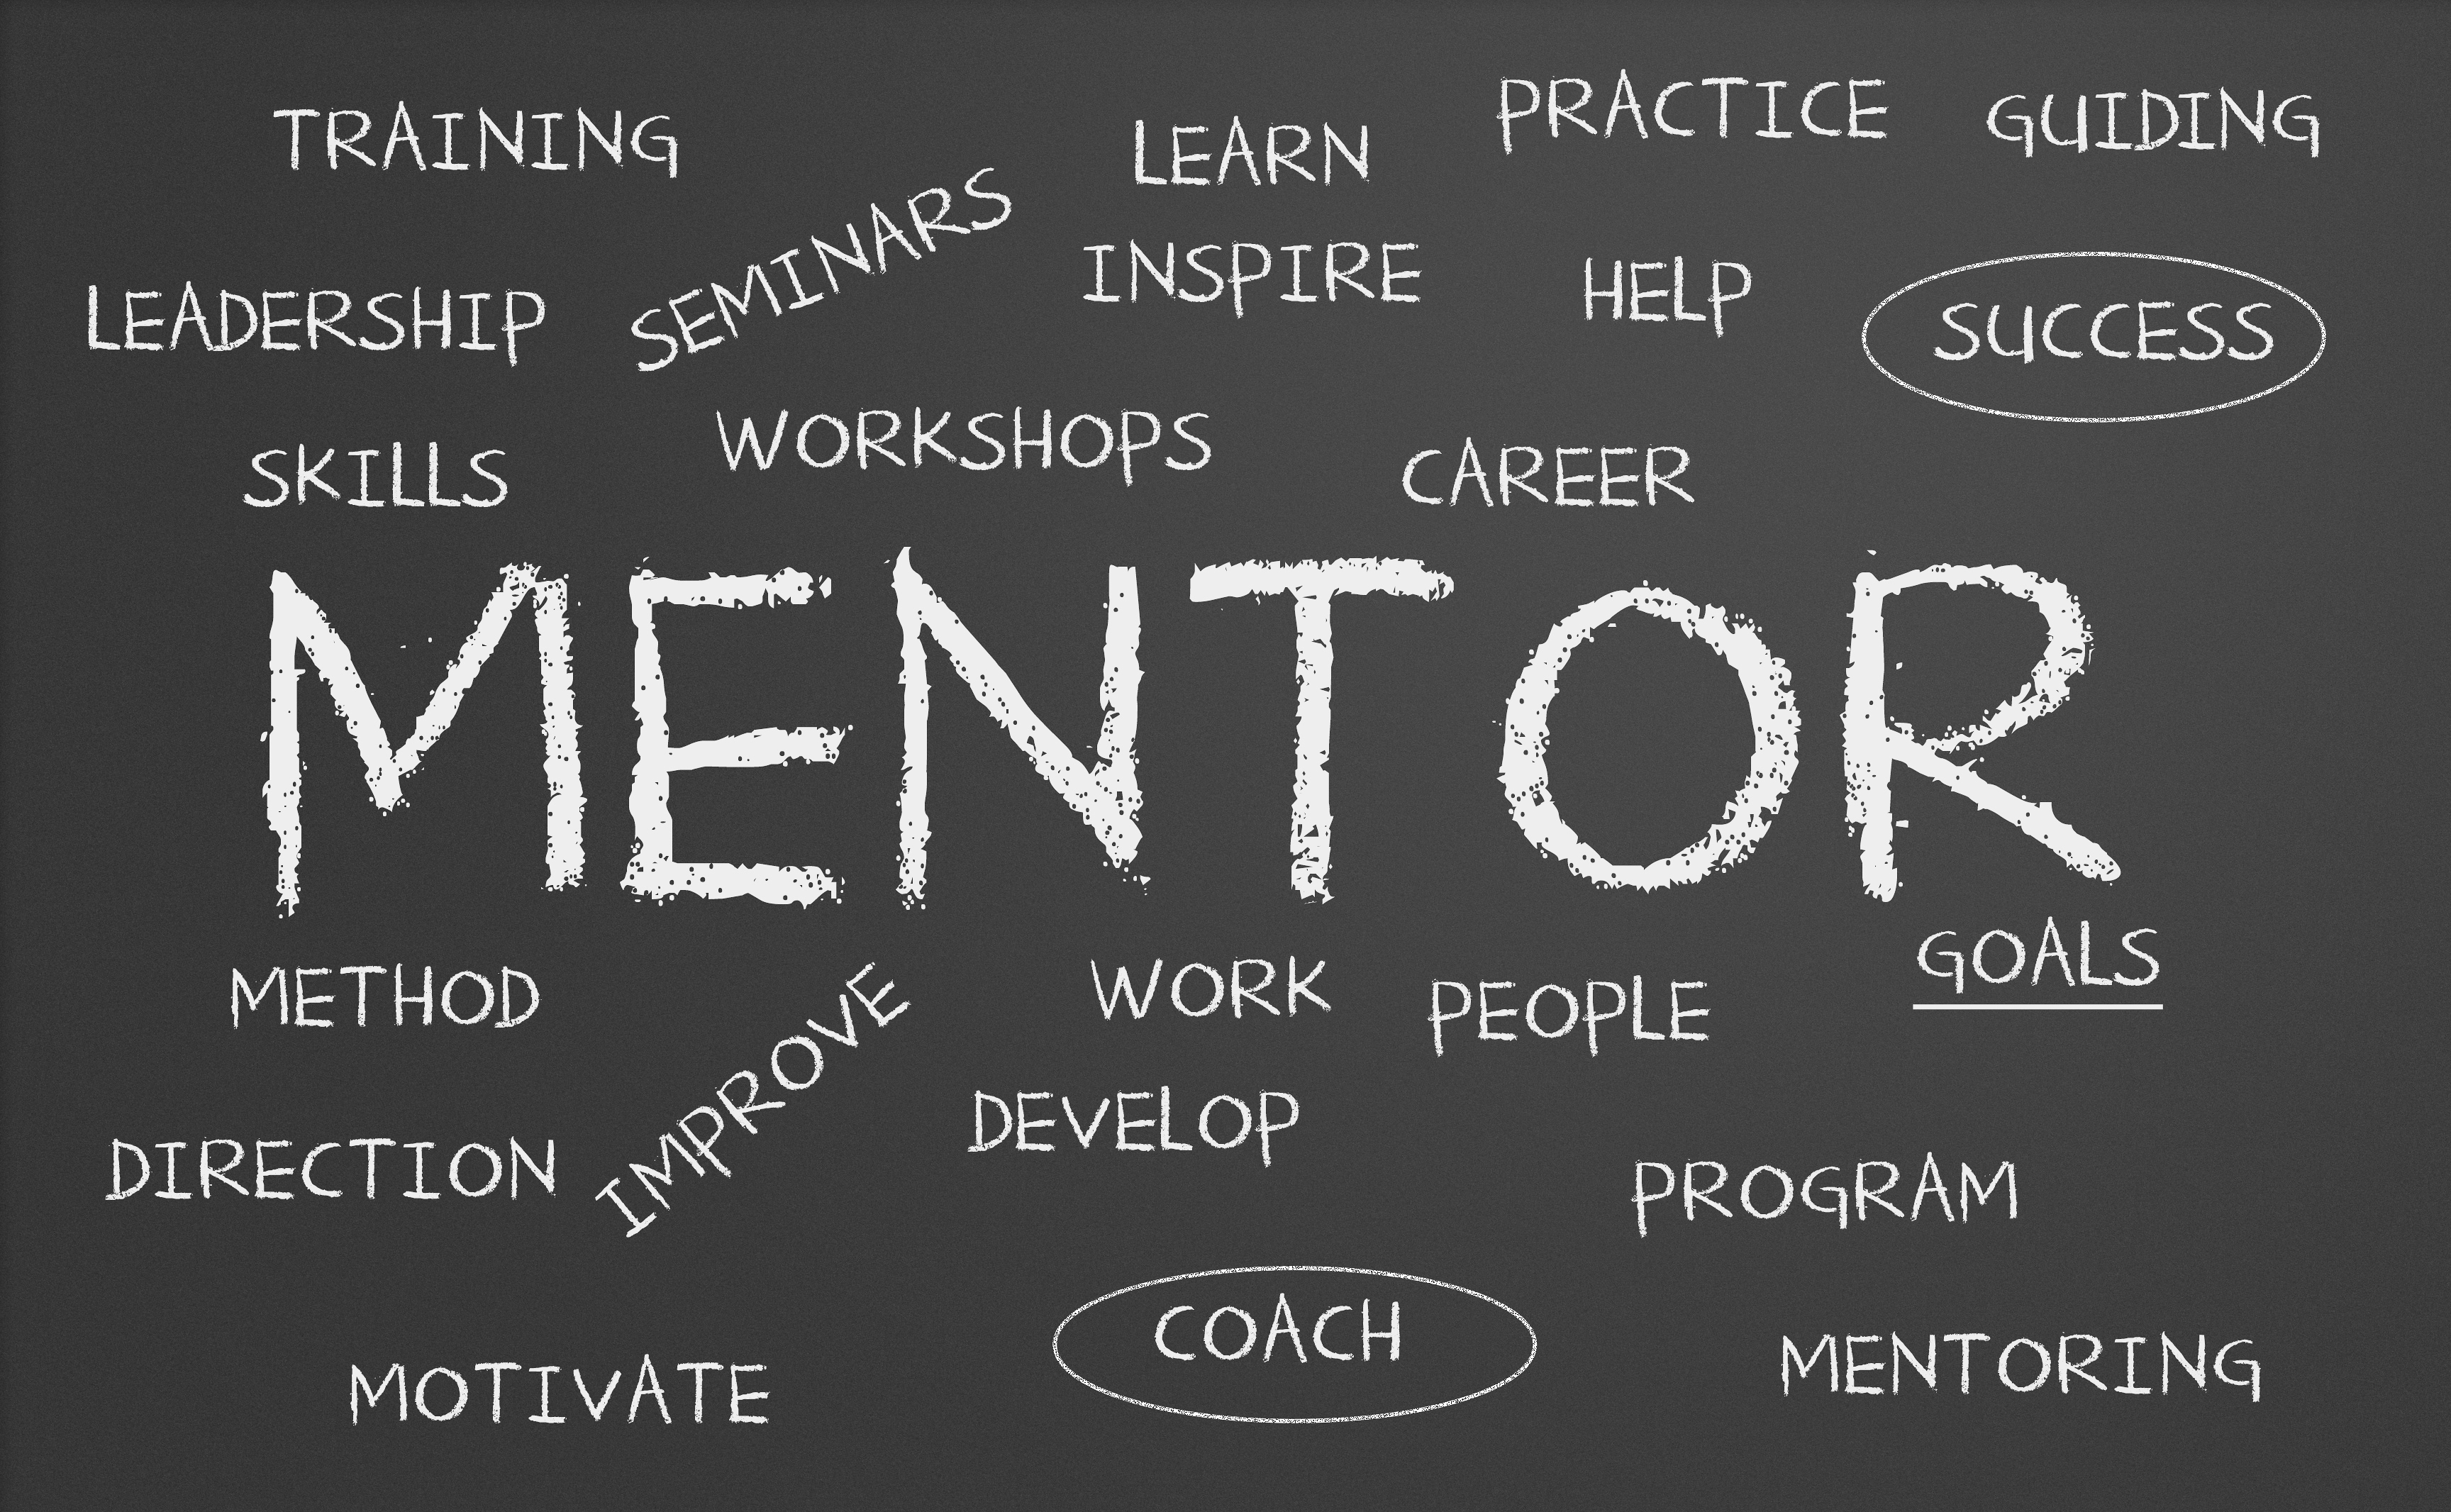 Apply to be Matched with a Liberal Arts Alumni Mentor!